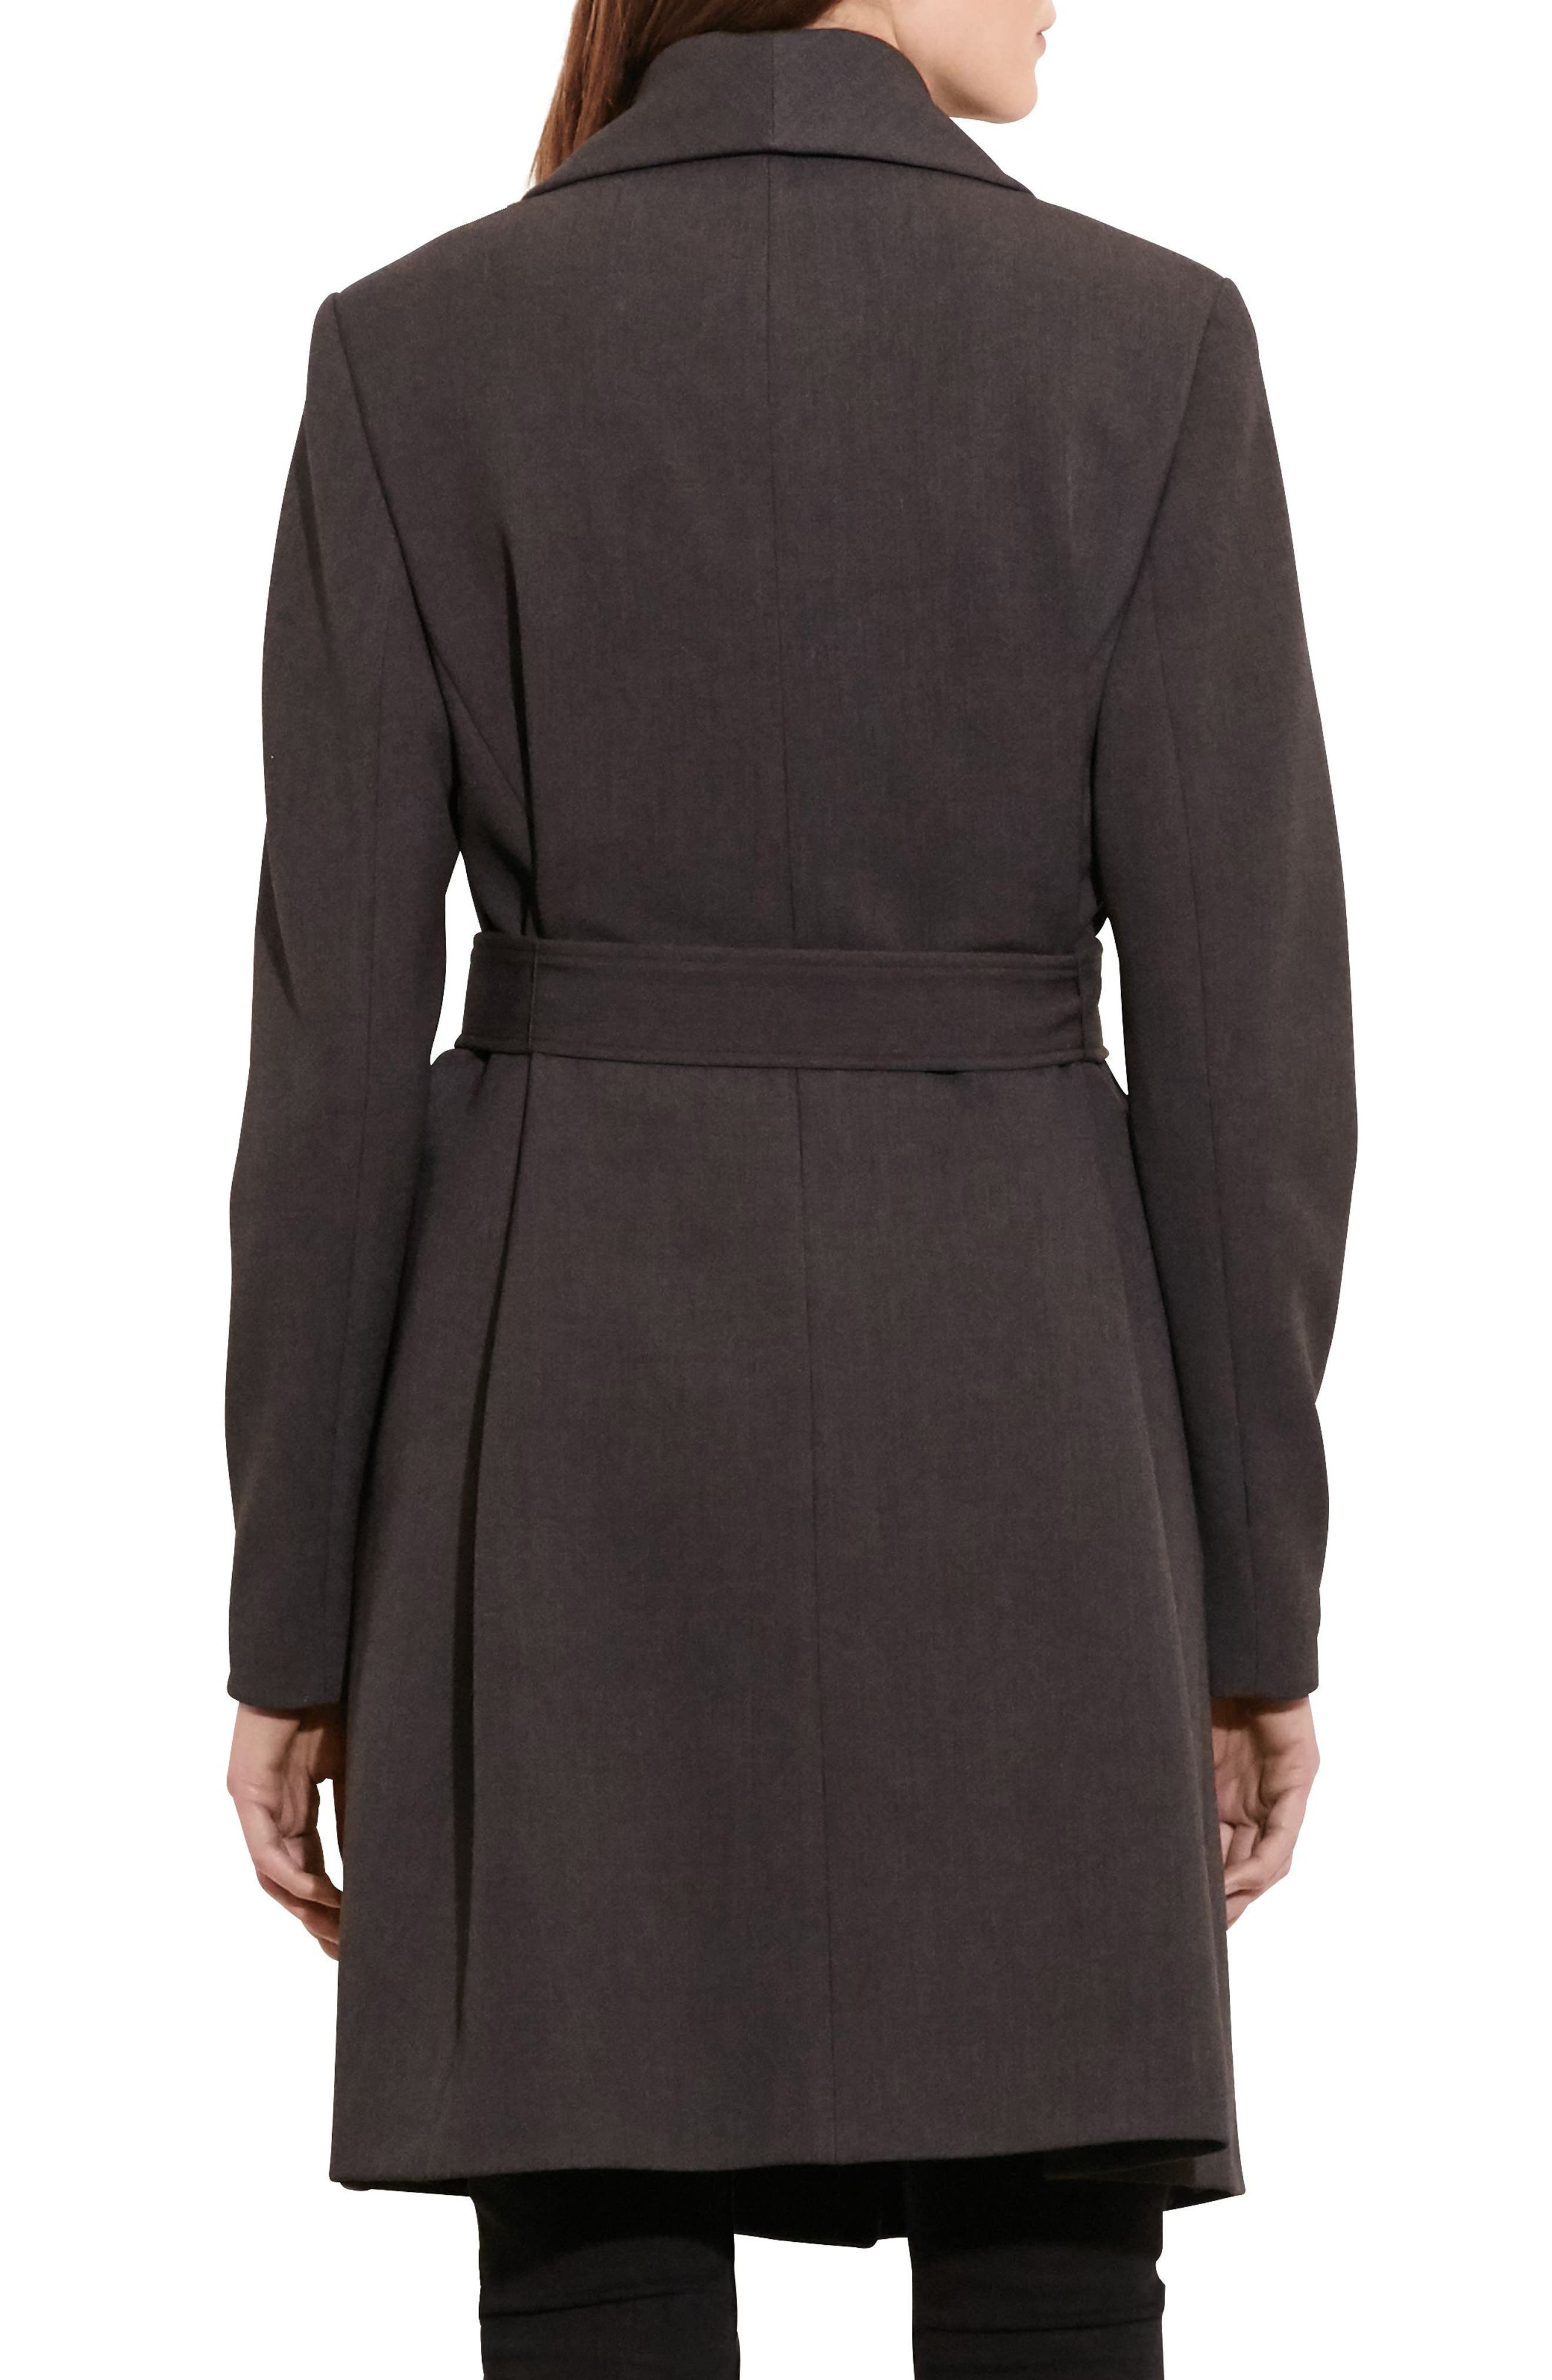 Belted Drape Front Coat,                             Alternate thumbnail 2, color,                             CHARCOAL